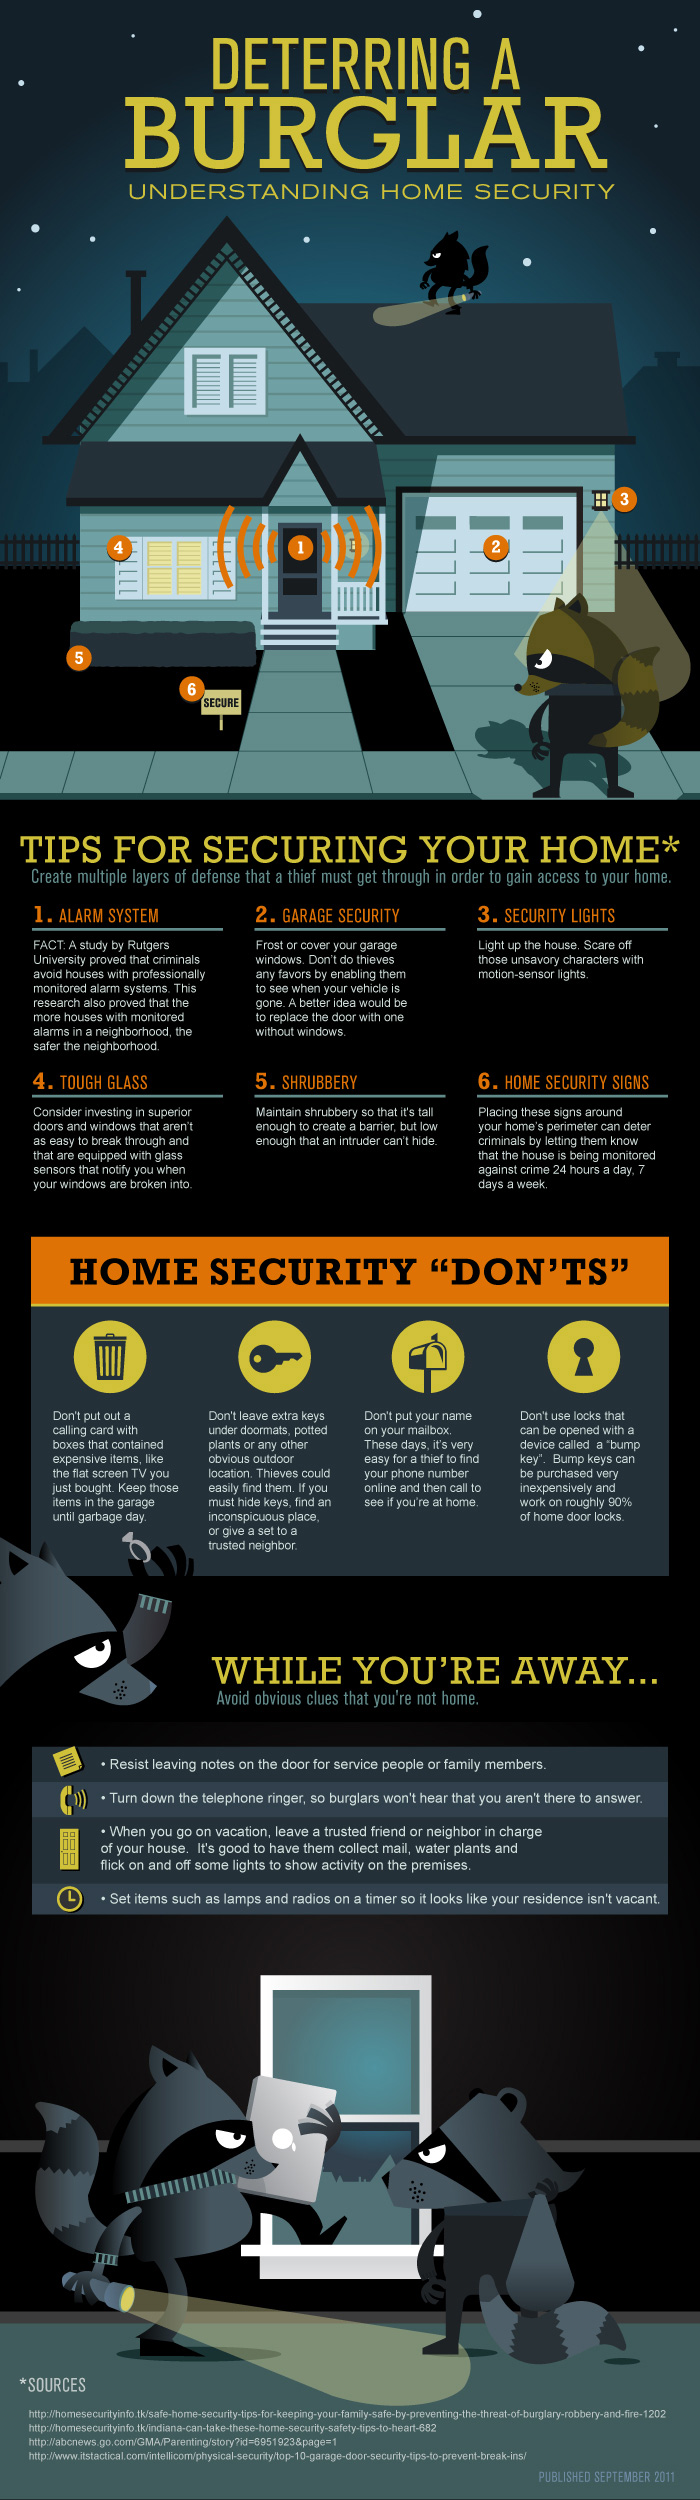 Deterring a Burglar: Understanding Home Security